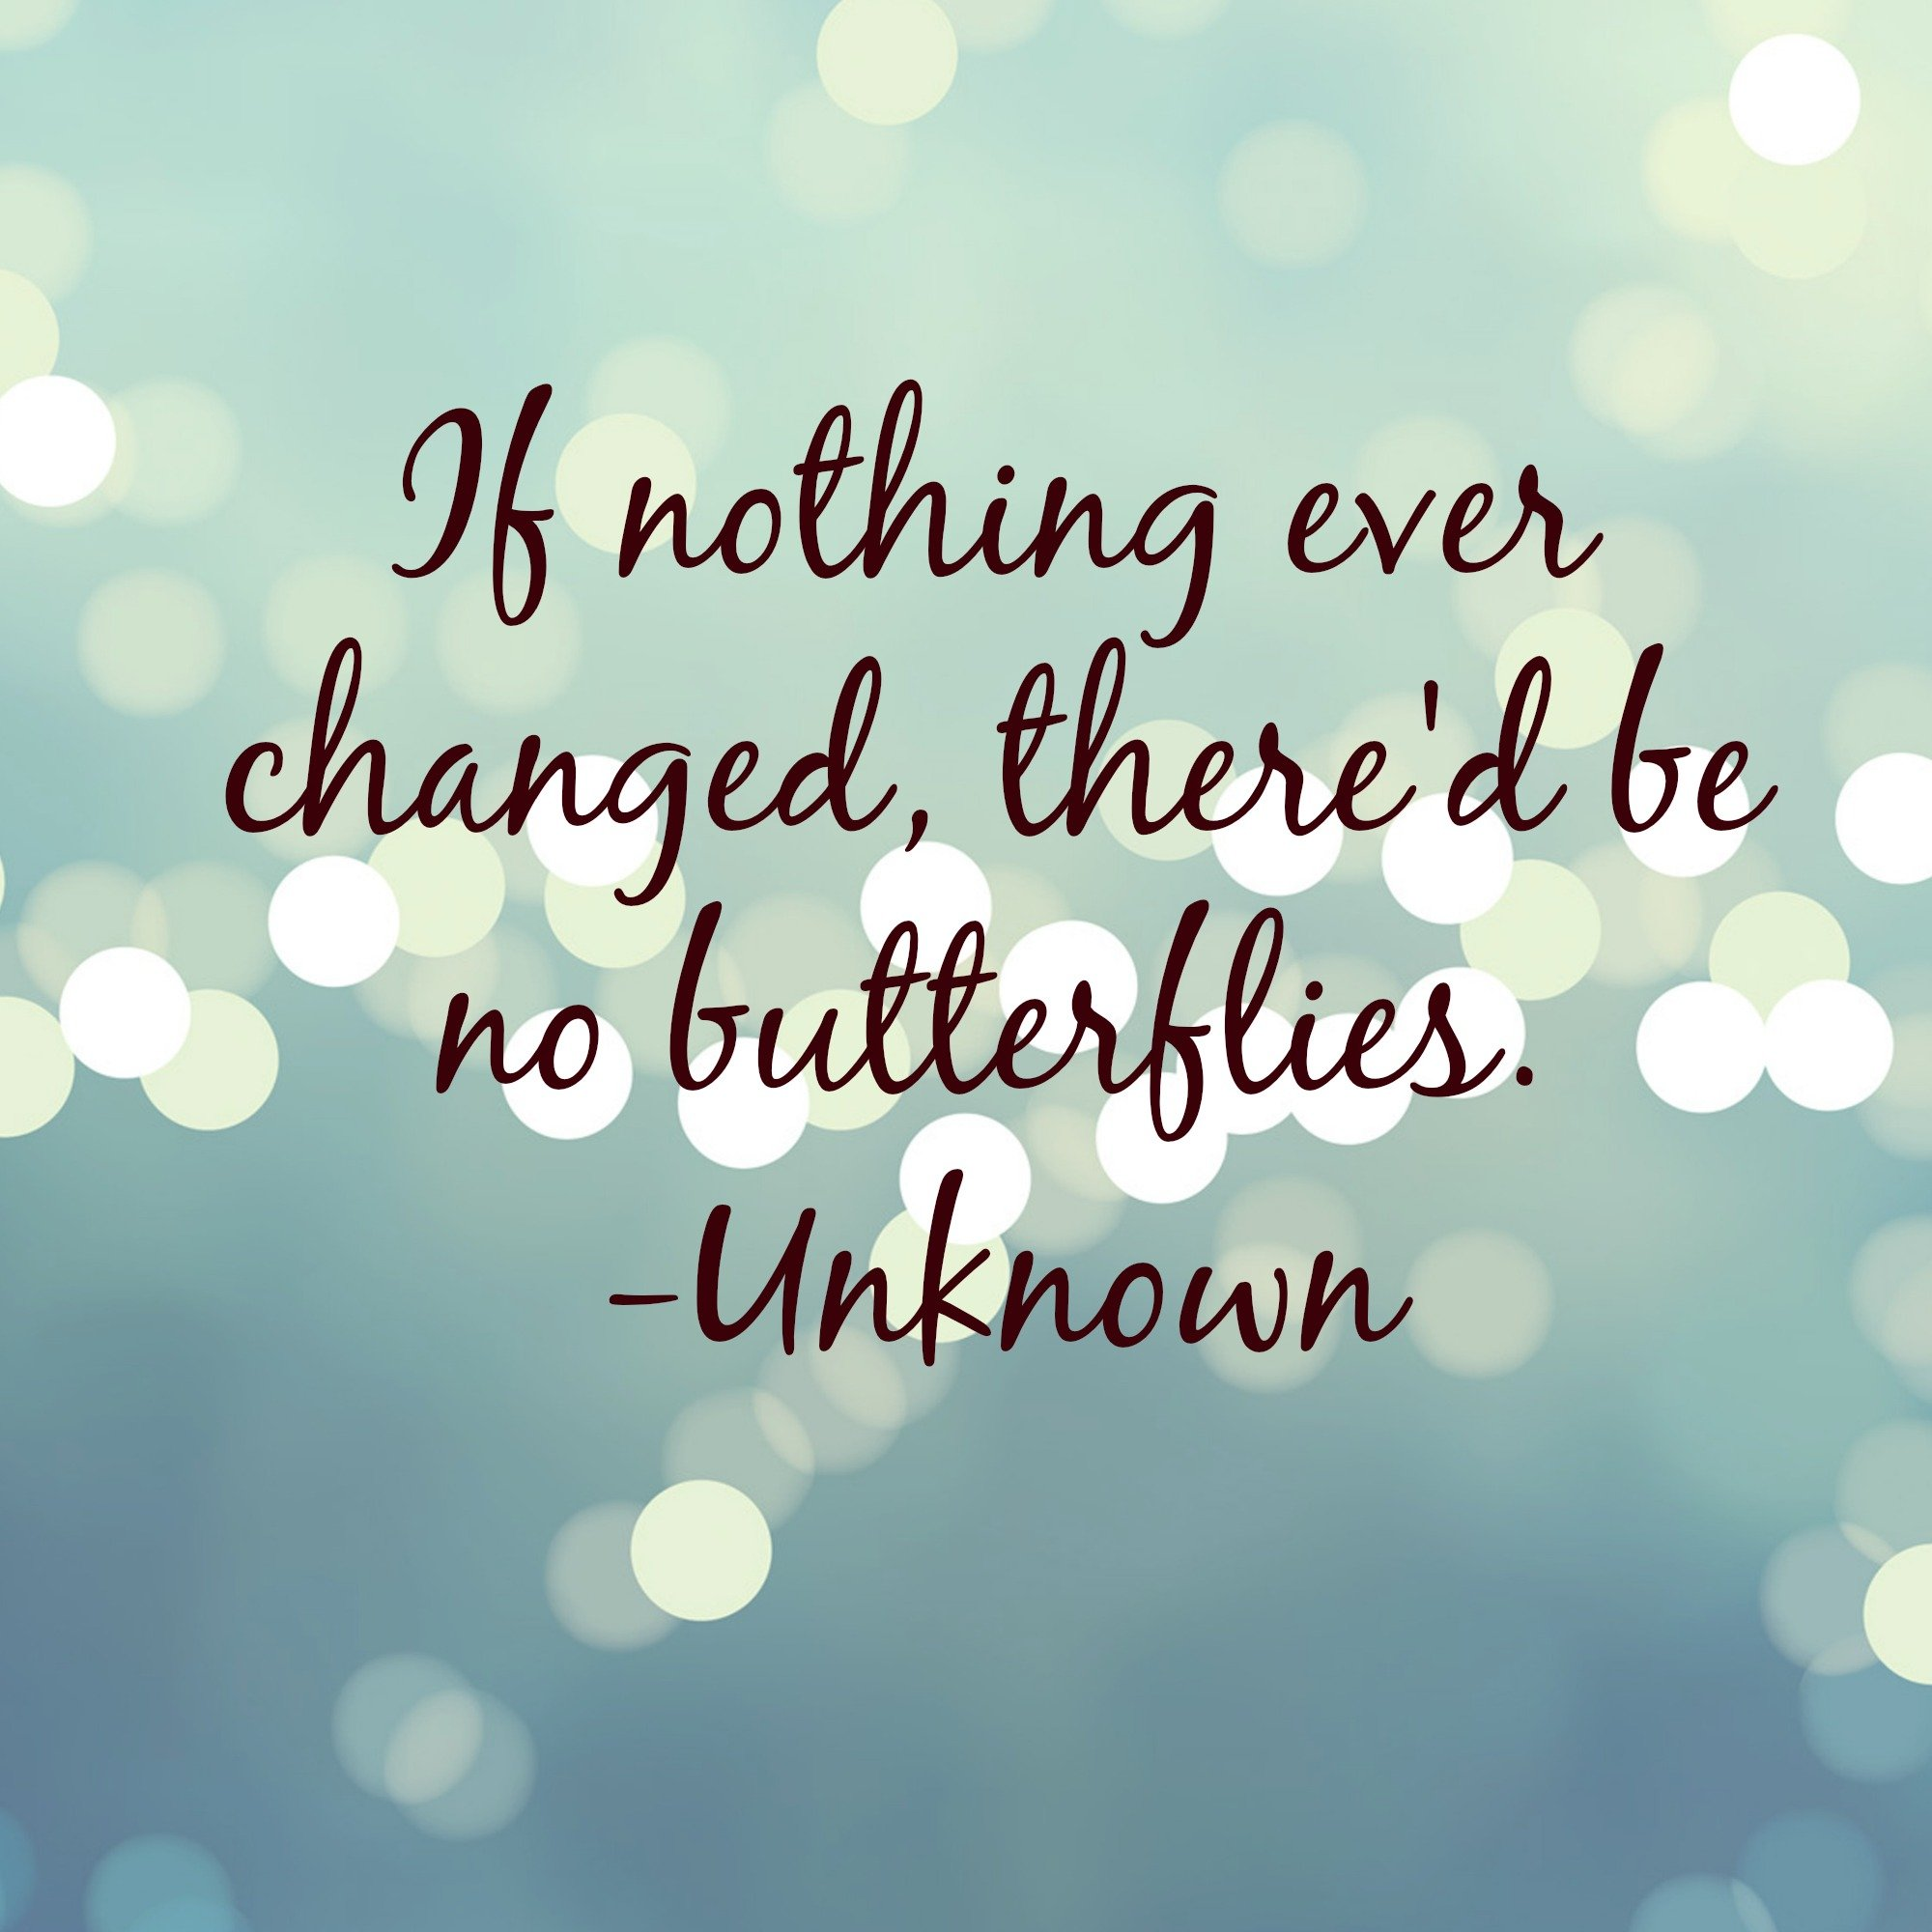 Change Inspirational Quotes: Quotes On Change And Growth. QuotesGram